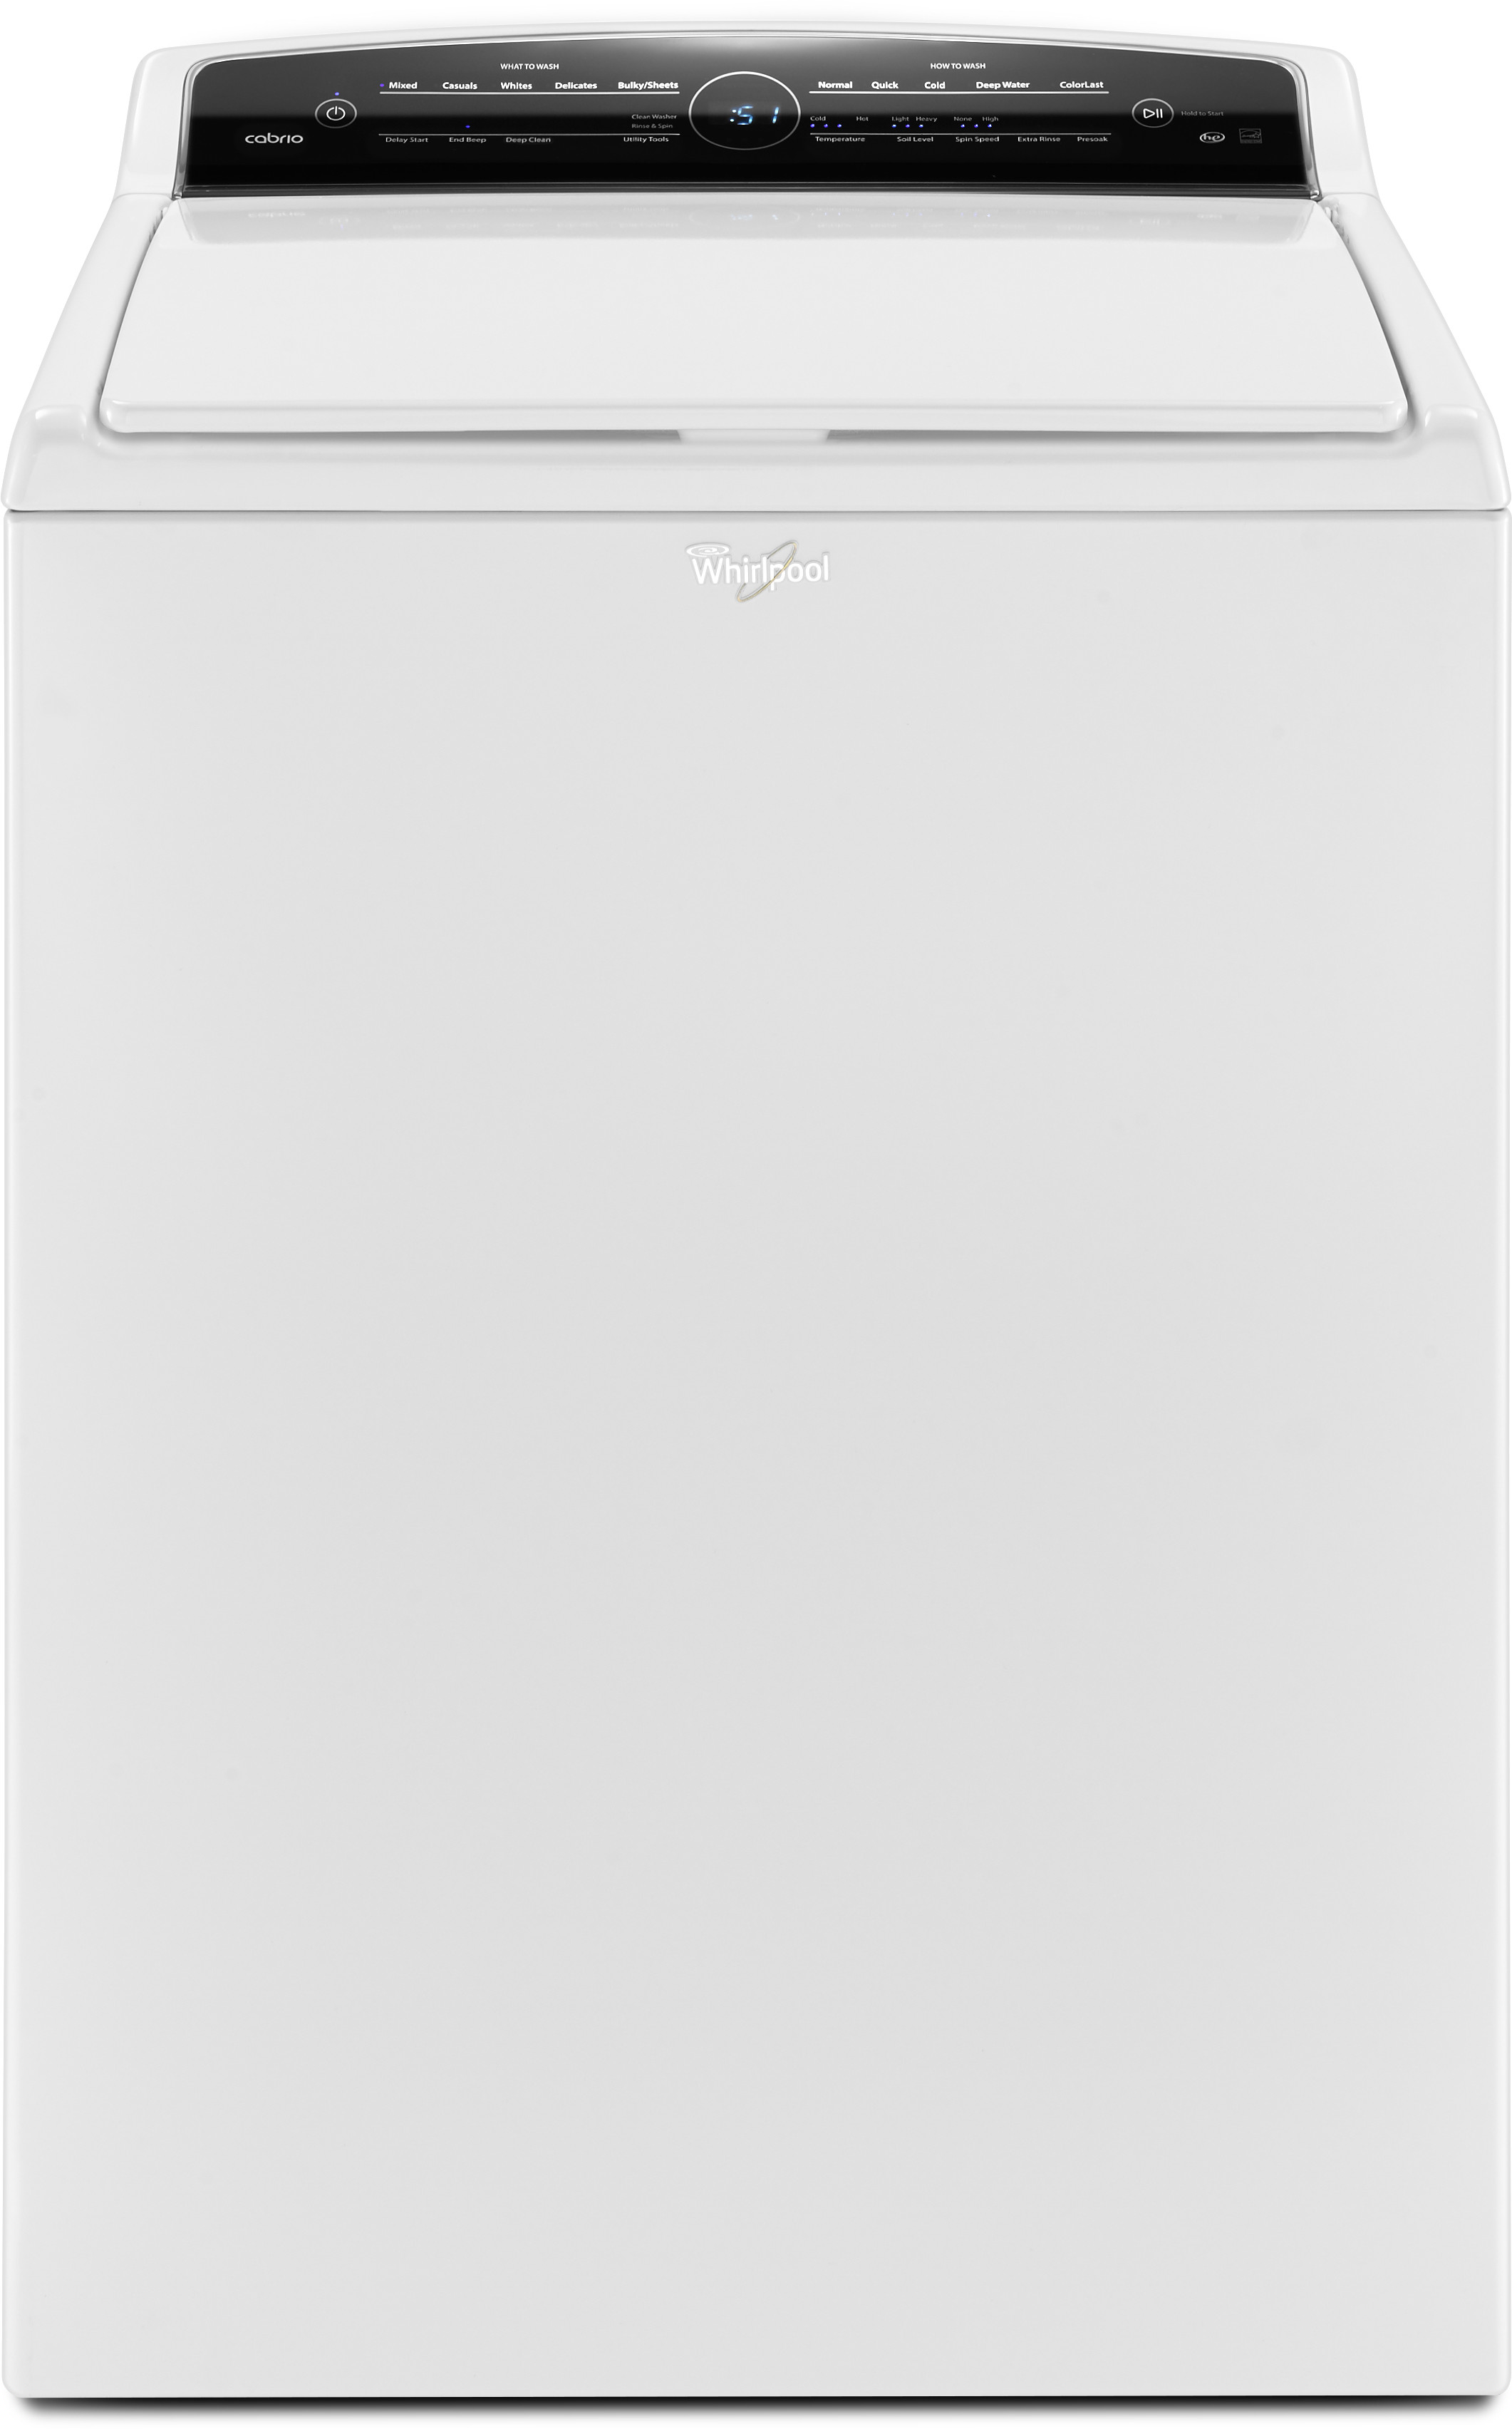 Whirlpool Wtw7000dw 28 Inch 4 8 Cu Ft Top Load Washer With 12 Wash